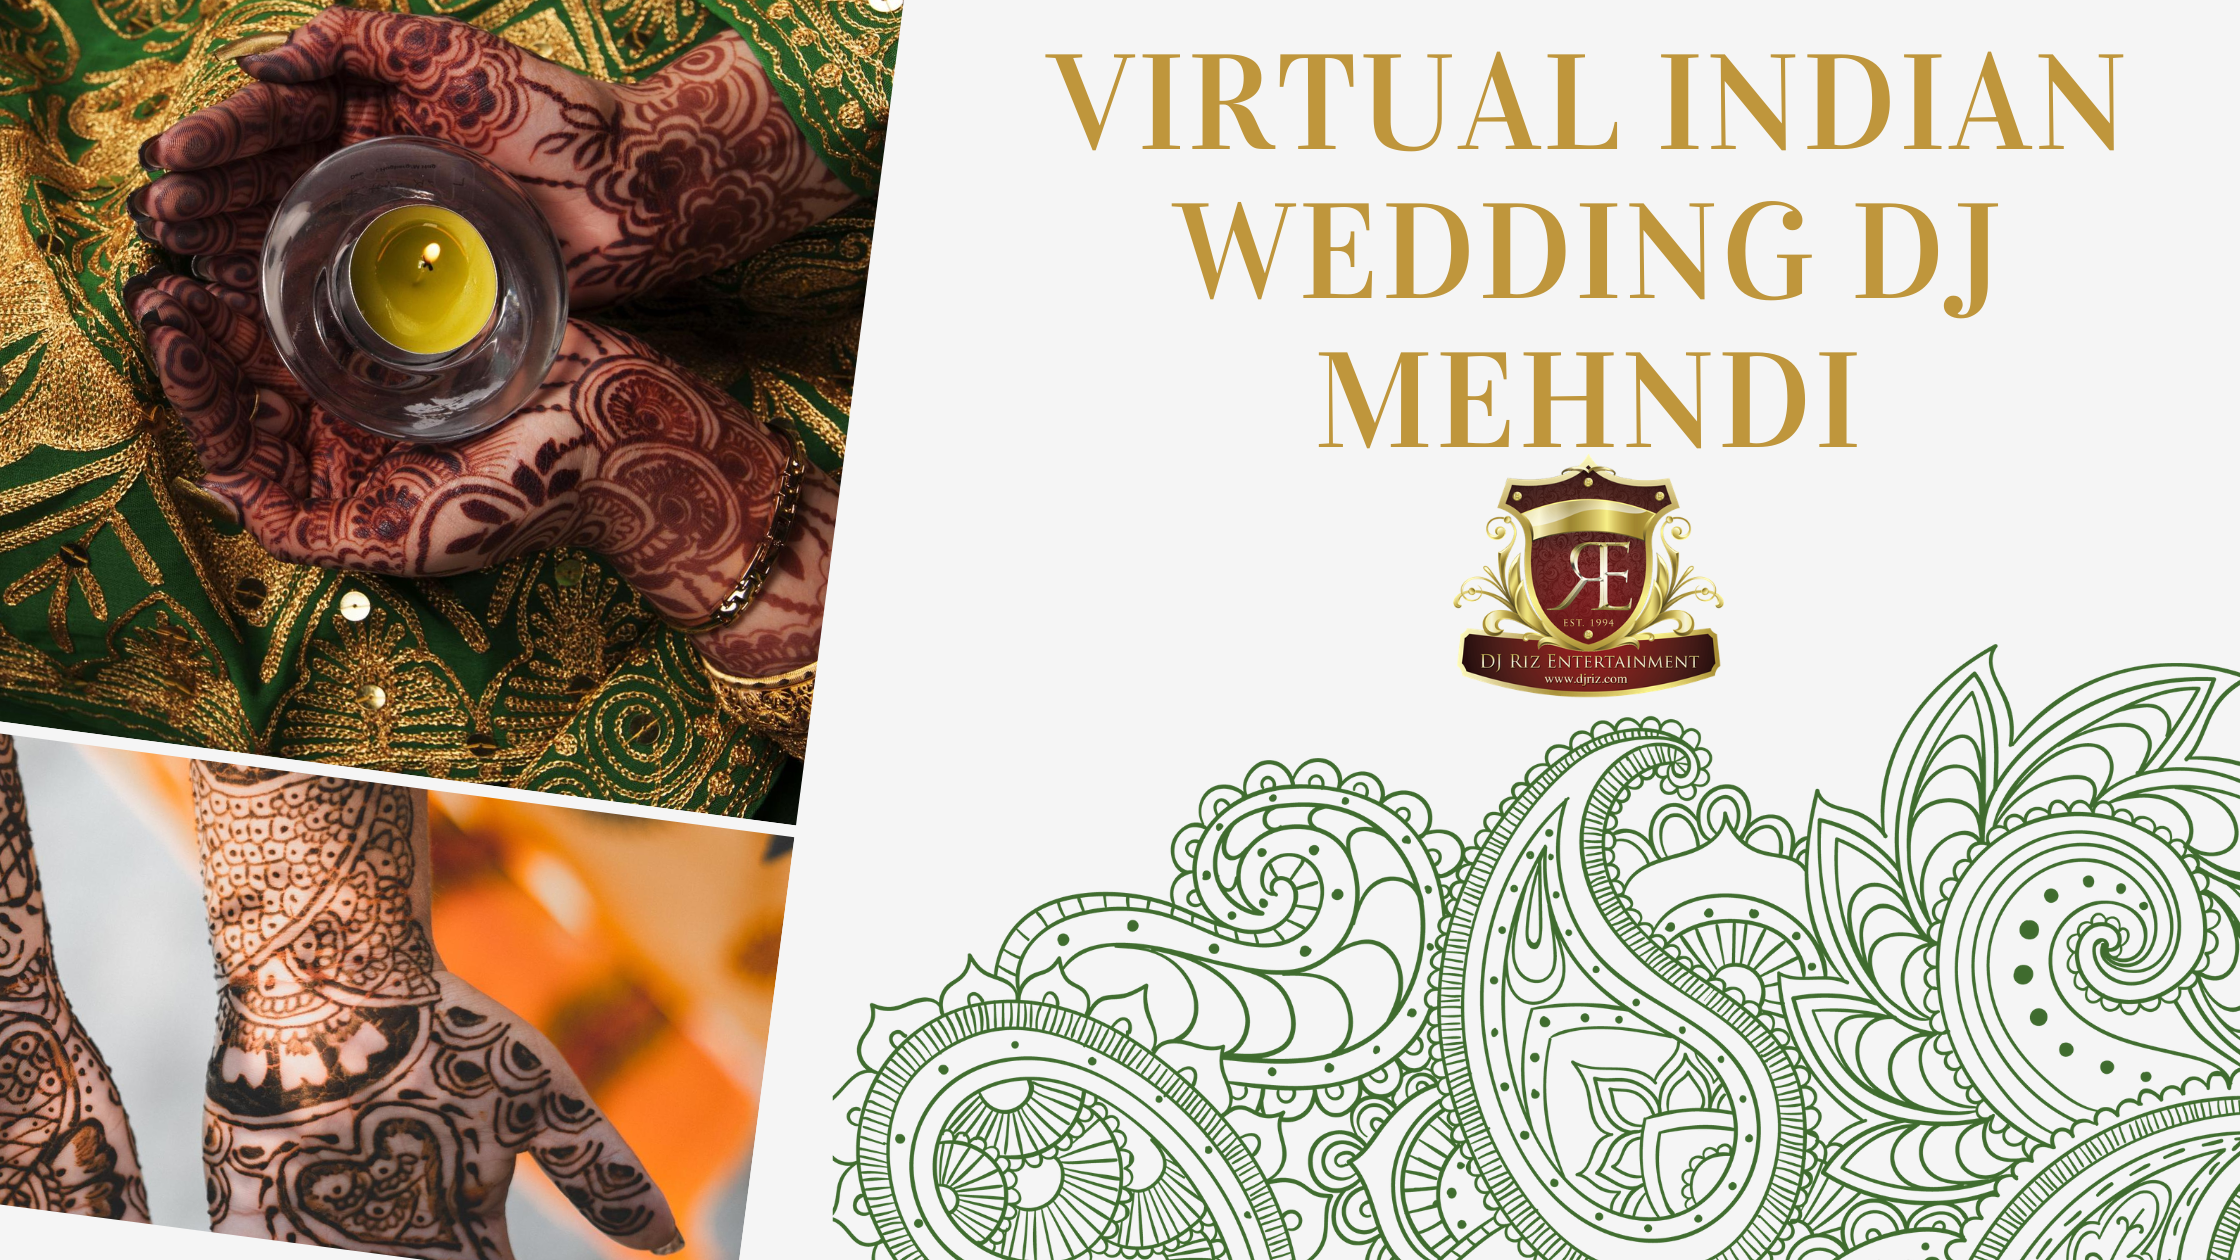 Virtual Indian Wedding DJ Mehndi